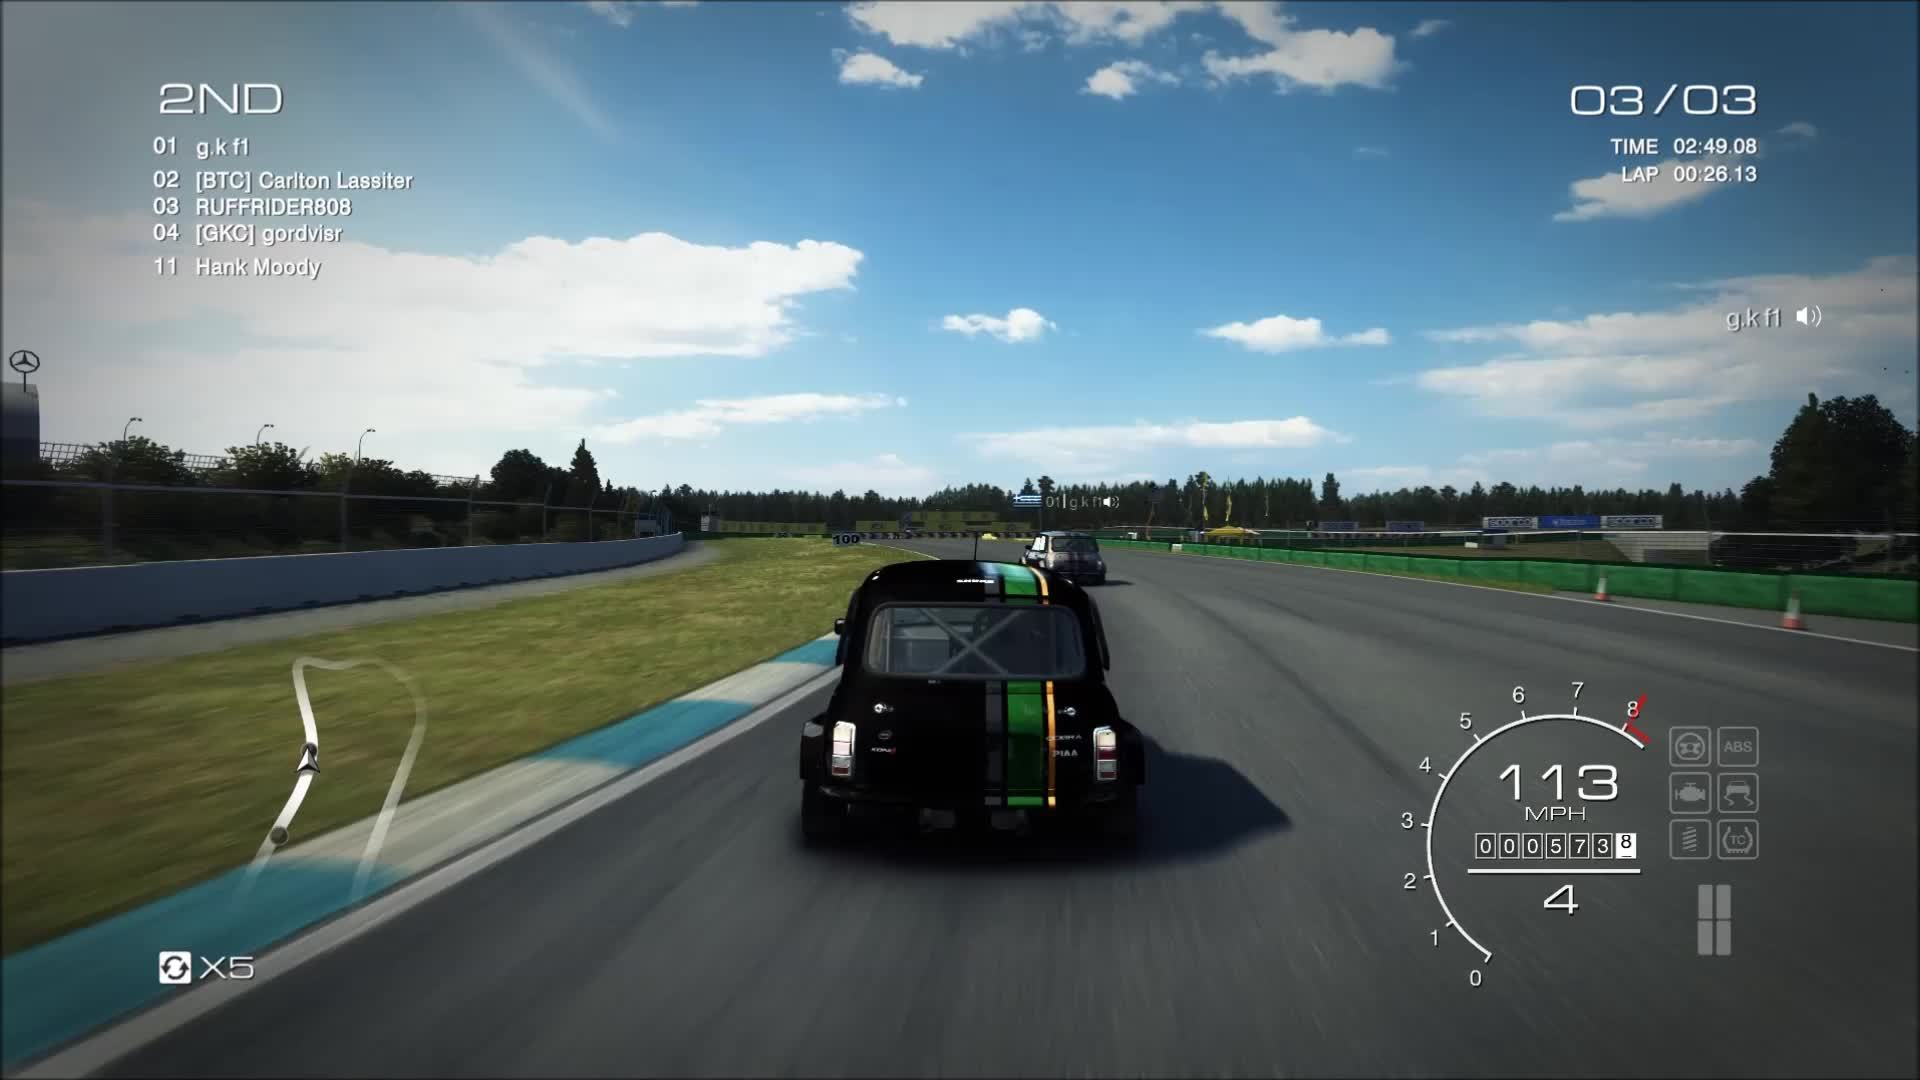 60fpsgaminggifs, 60fpsgfy, grid, [Grid Autosport] Taking the lead (reddit) GIFs